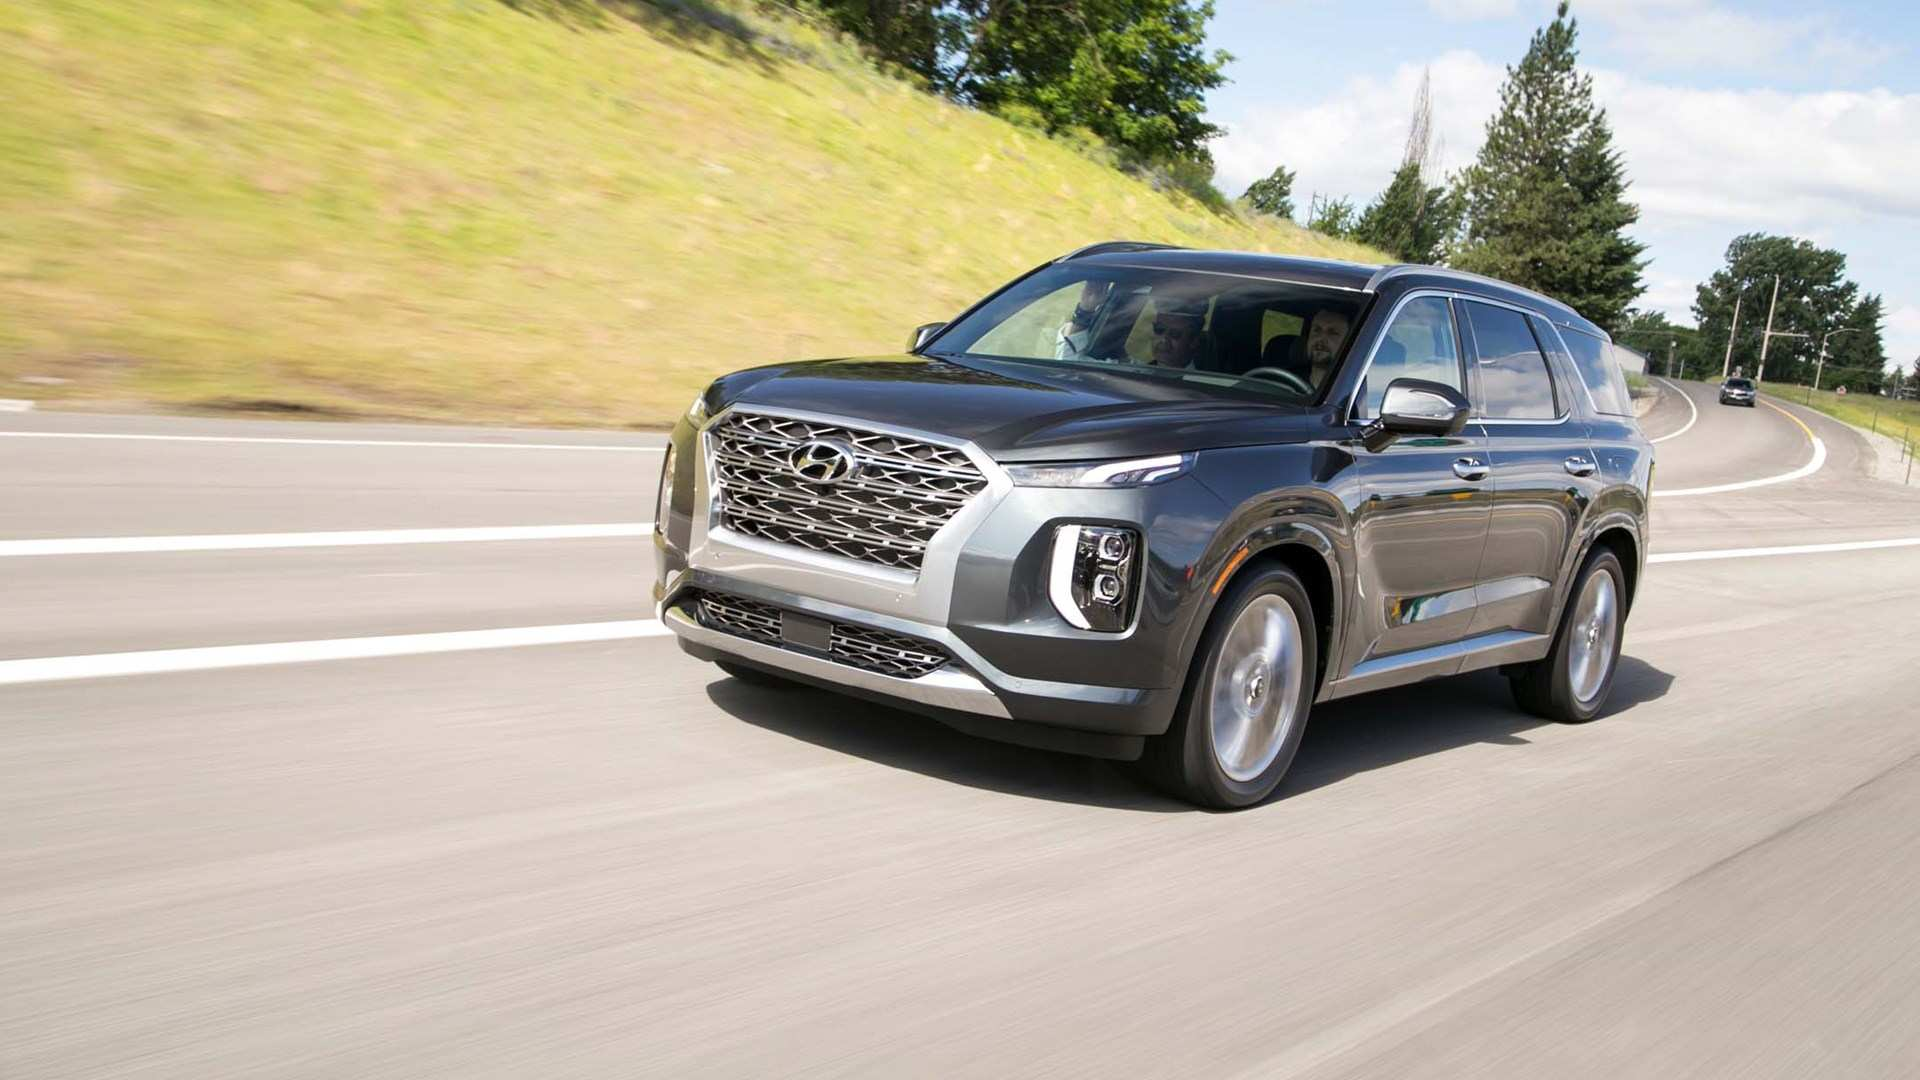 31 New 2020 Hyundai Palisade Review Performance